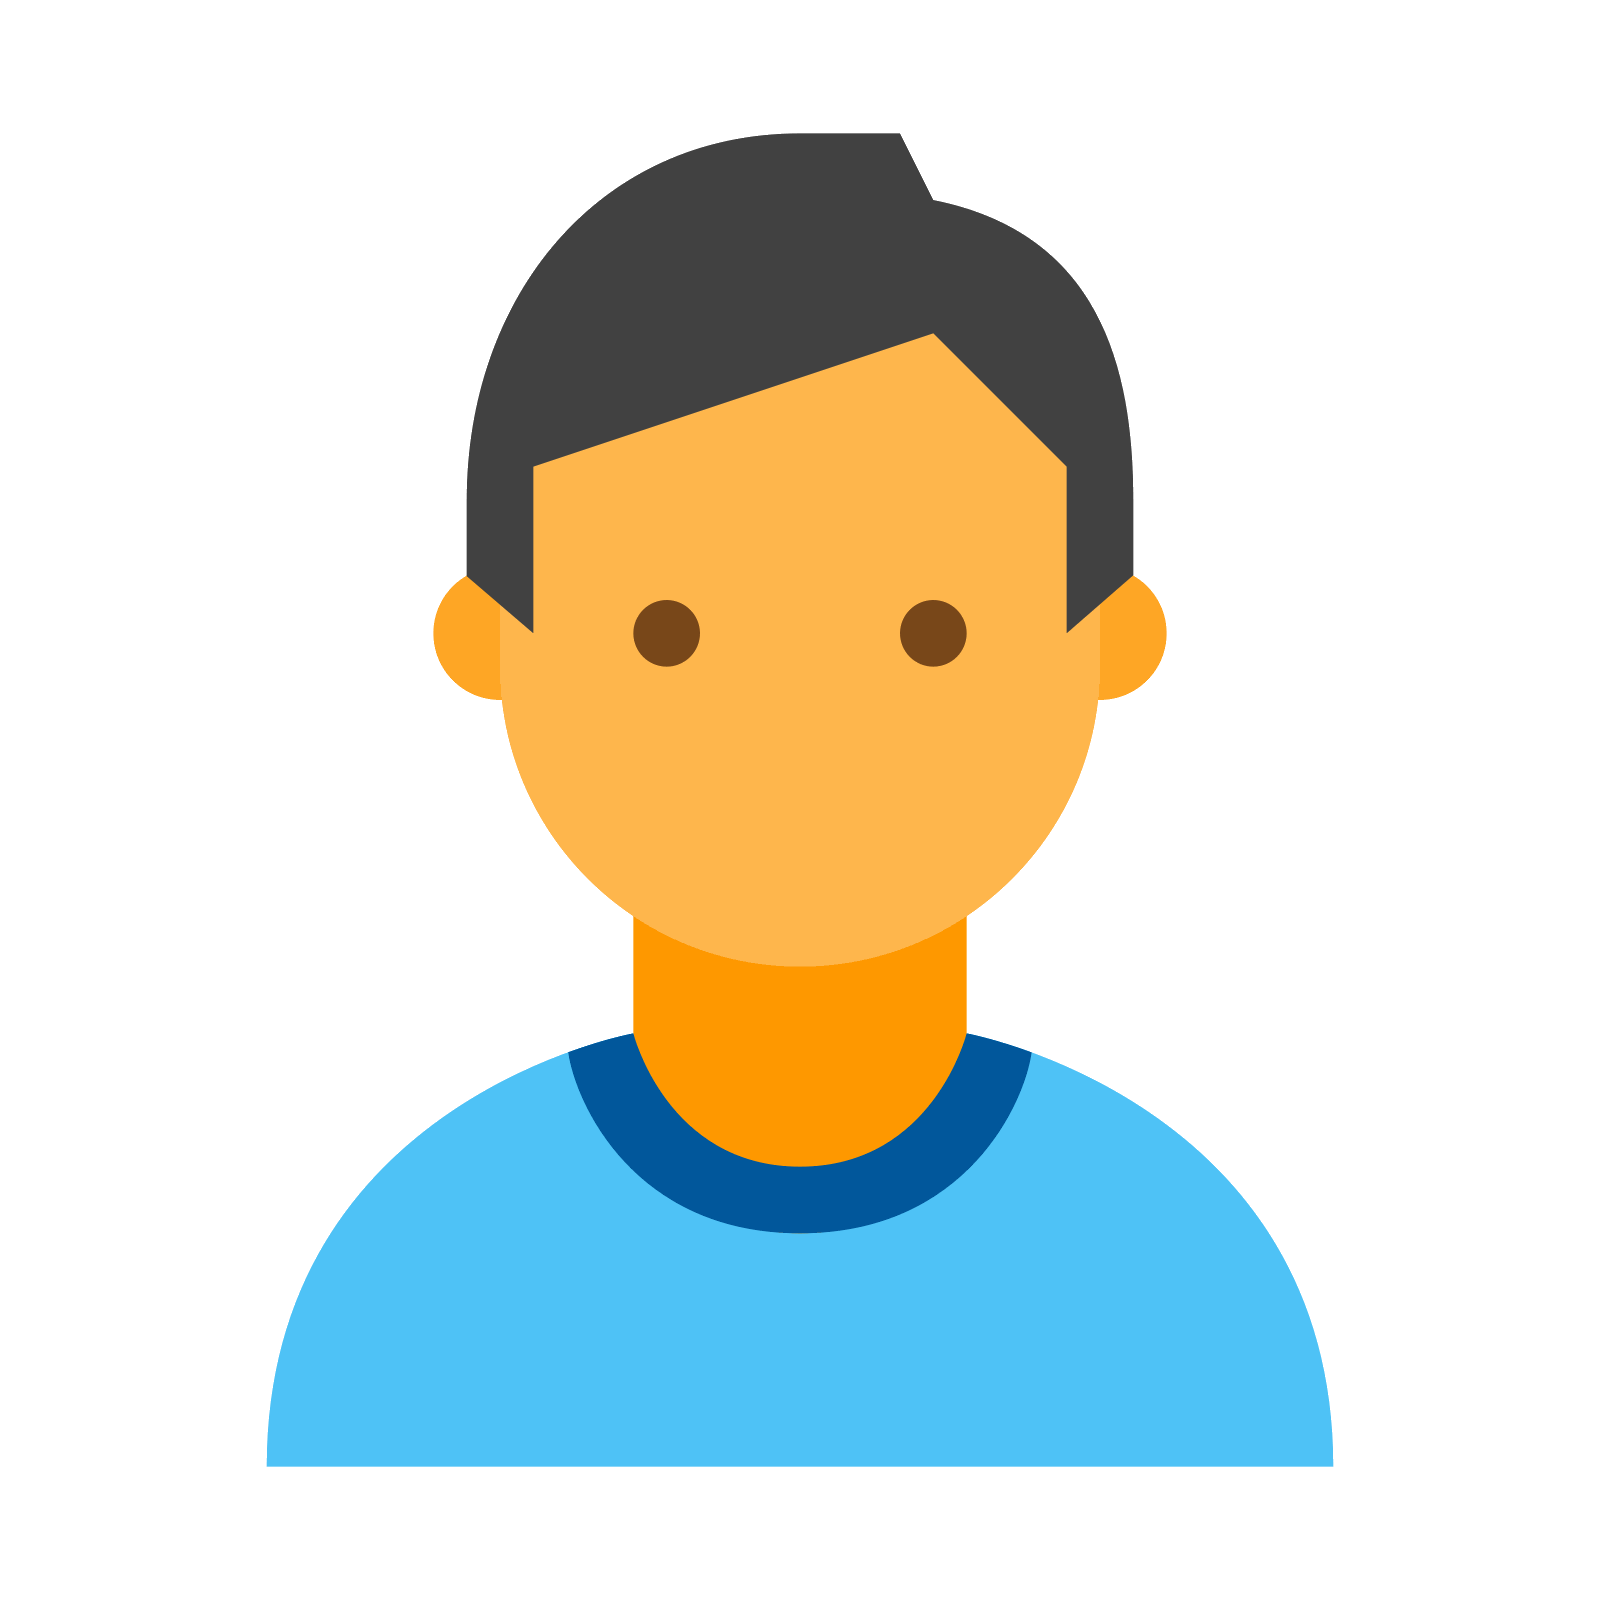 Person icon png. Free download and vector